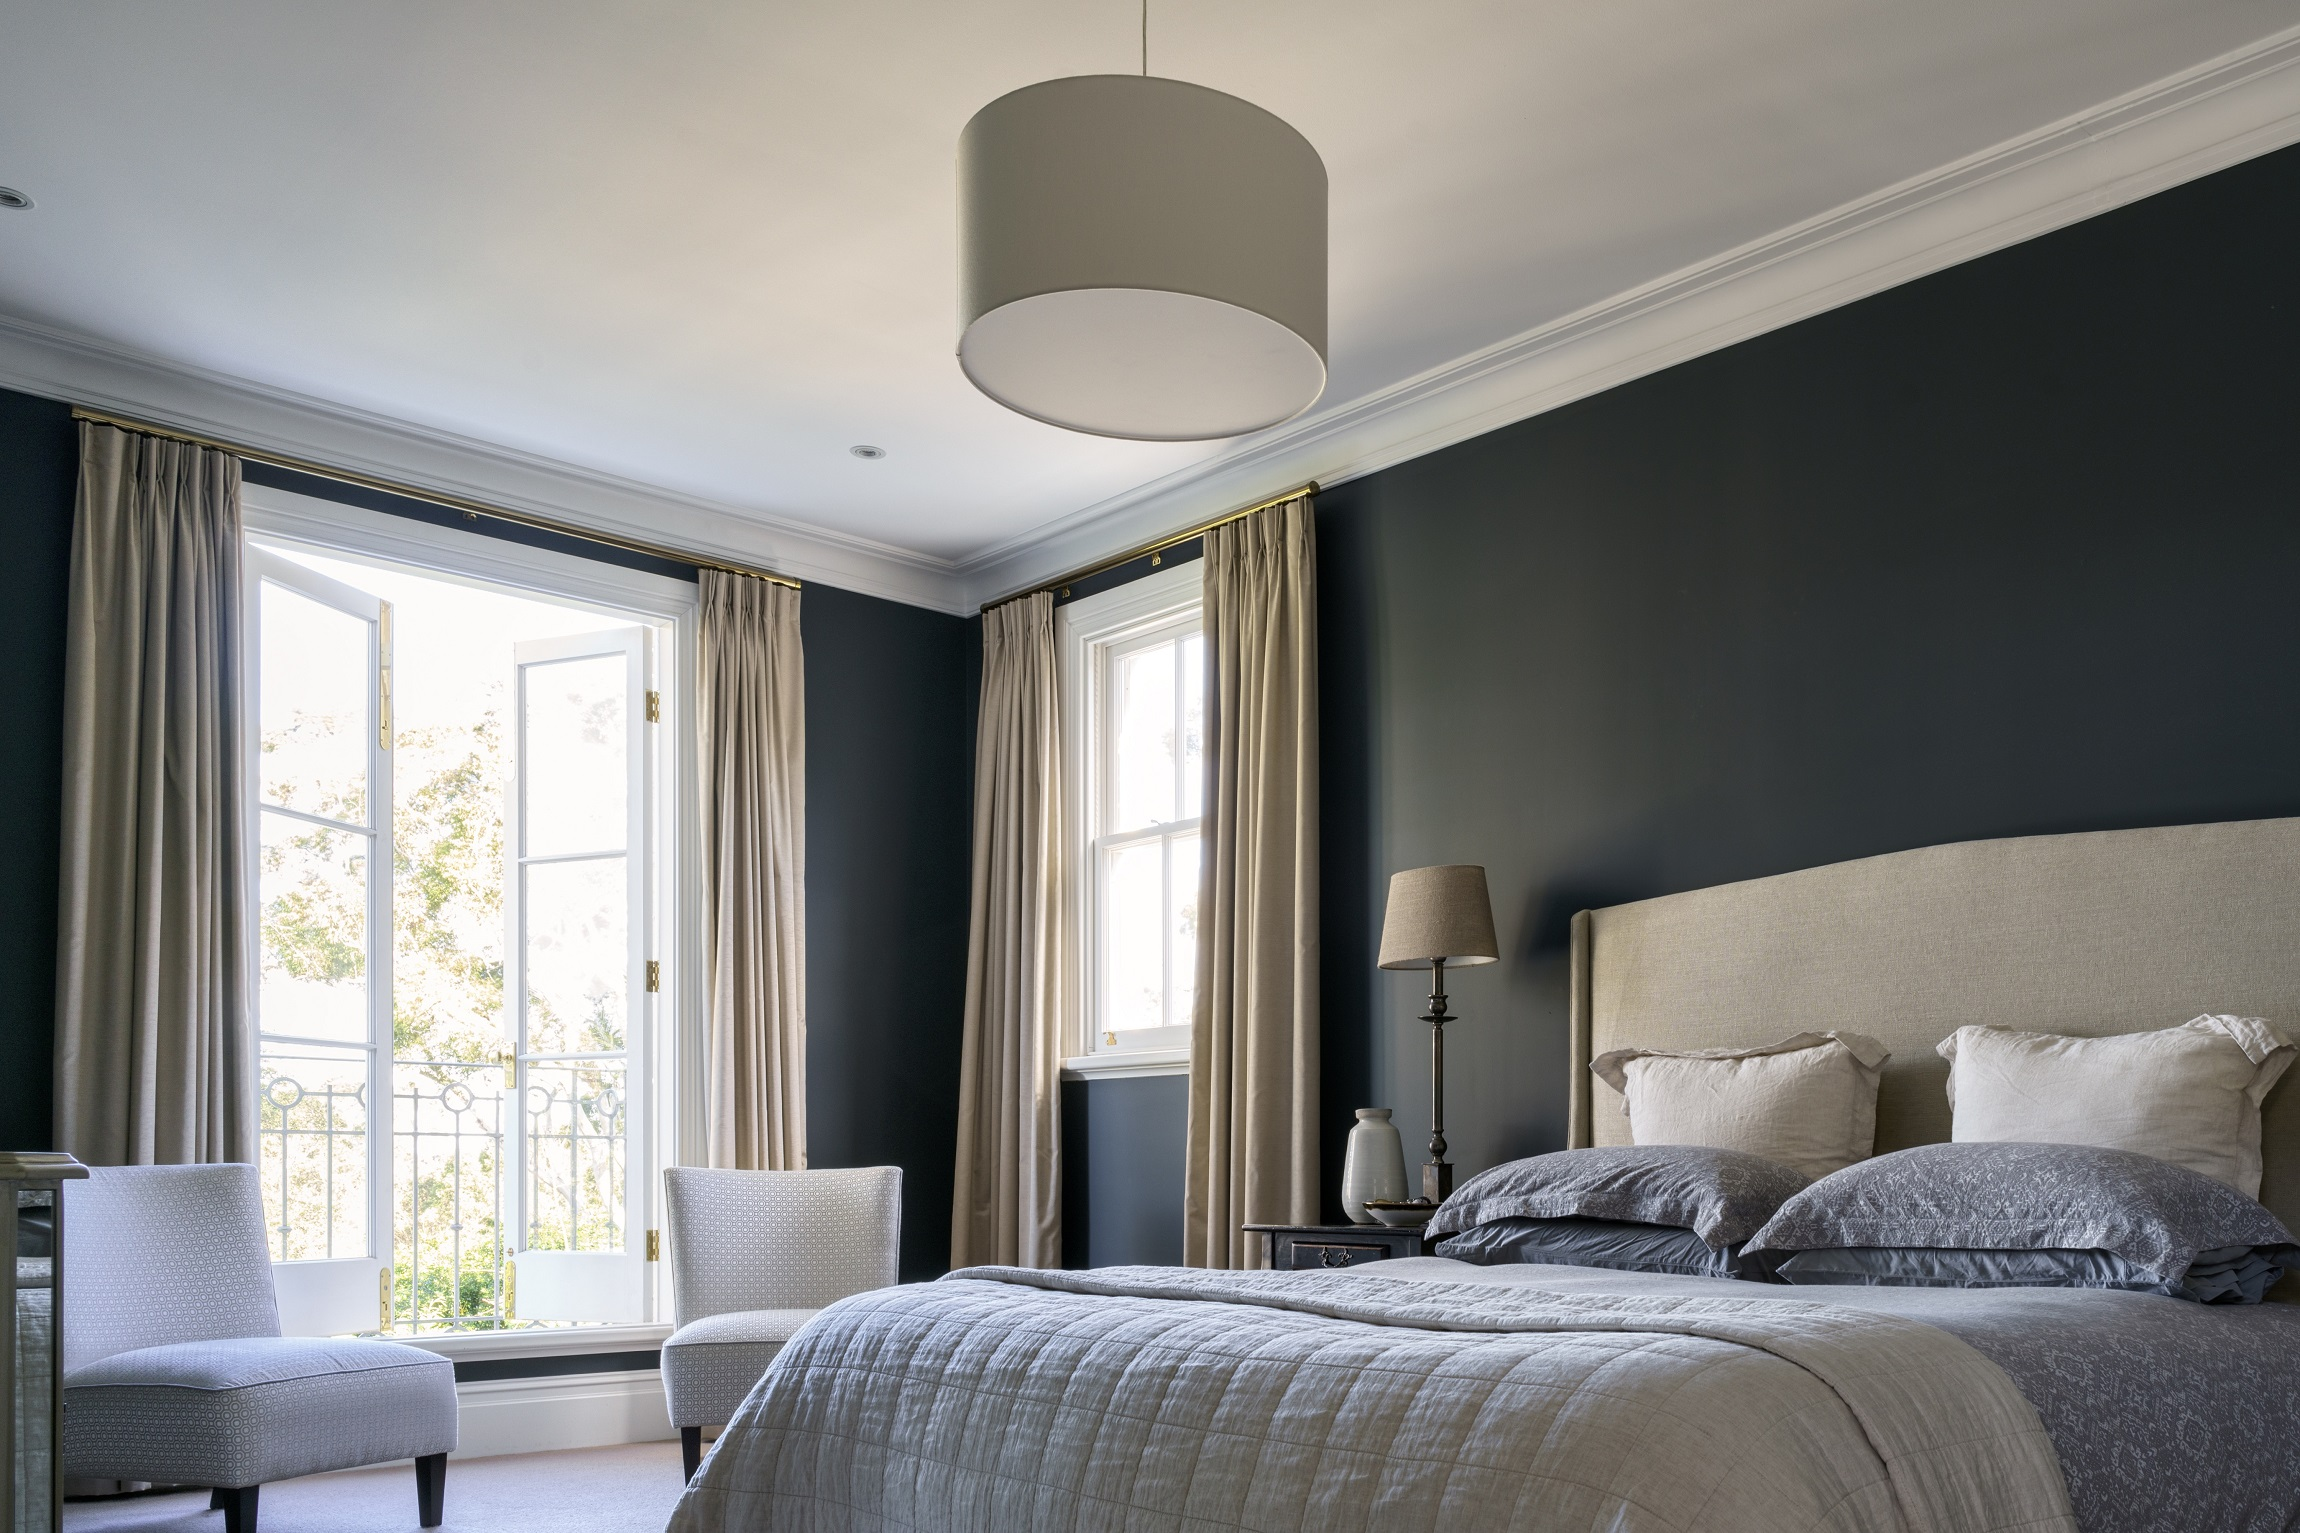 100-Year-Old-Heritage-Home-Restoration-Bedroom-Michael-Bell-Architects-Sydney